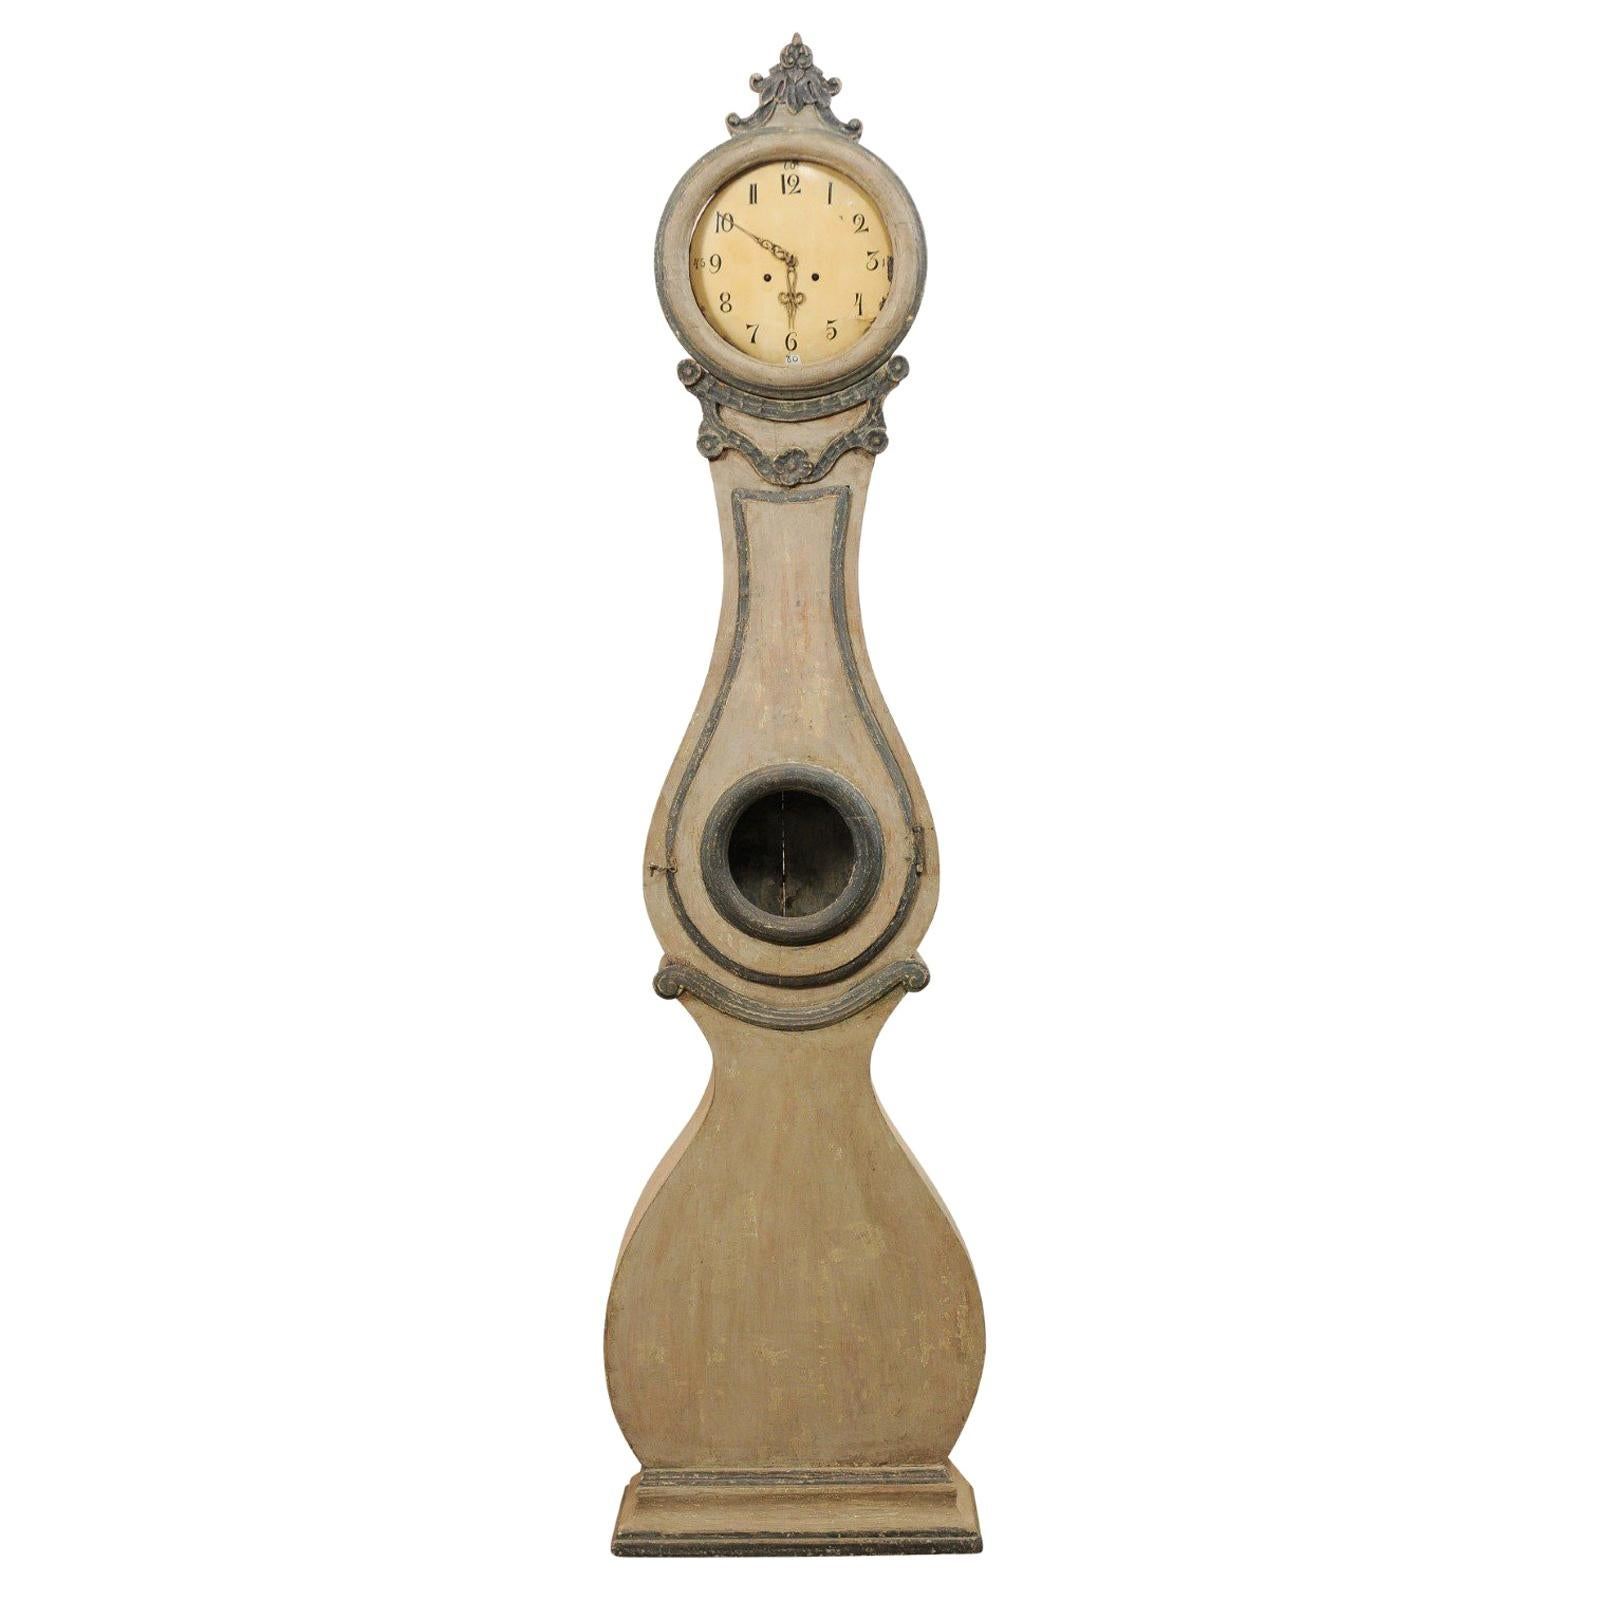 19th Century Swedish Fryksdahl Painted Wood Floor Clock with Carved Crest